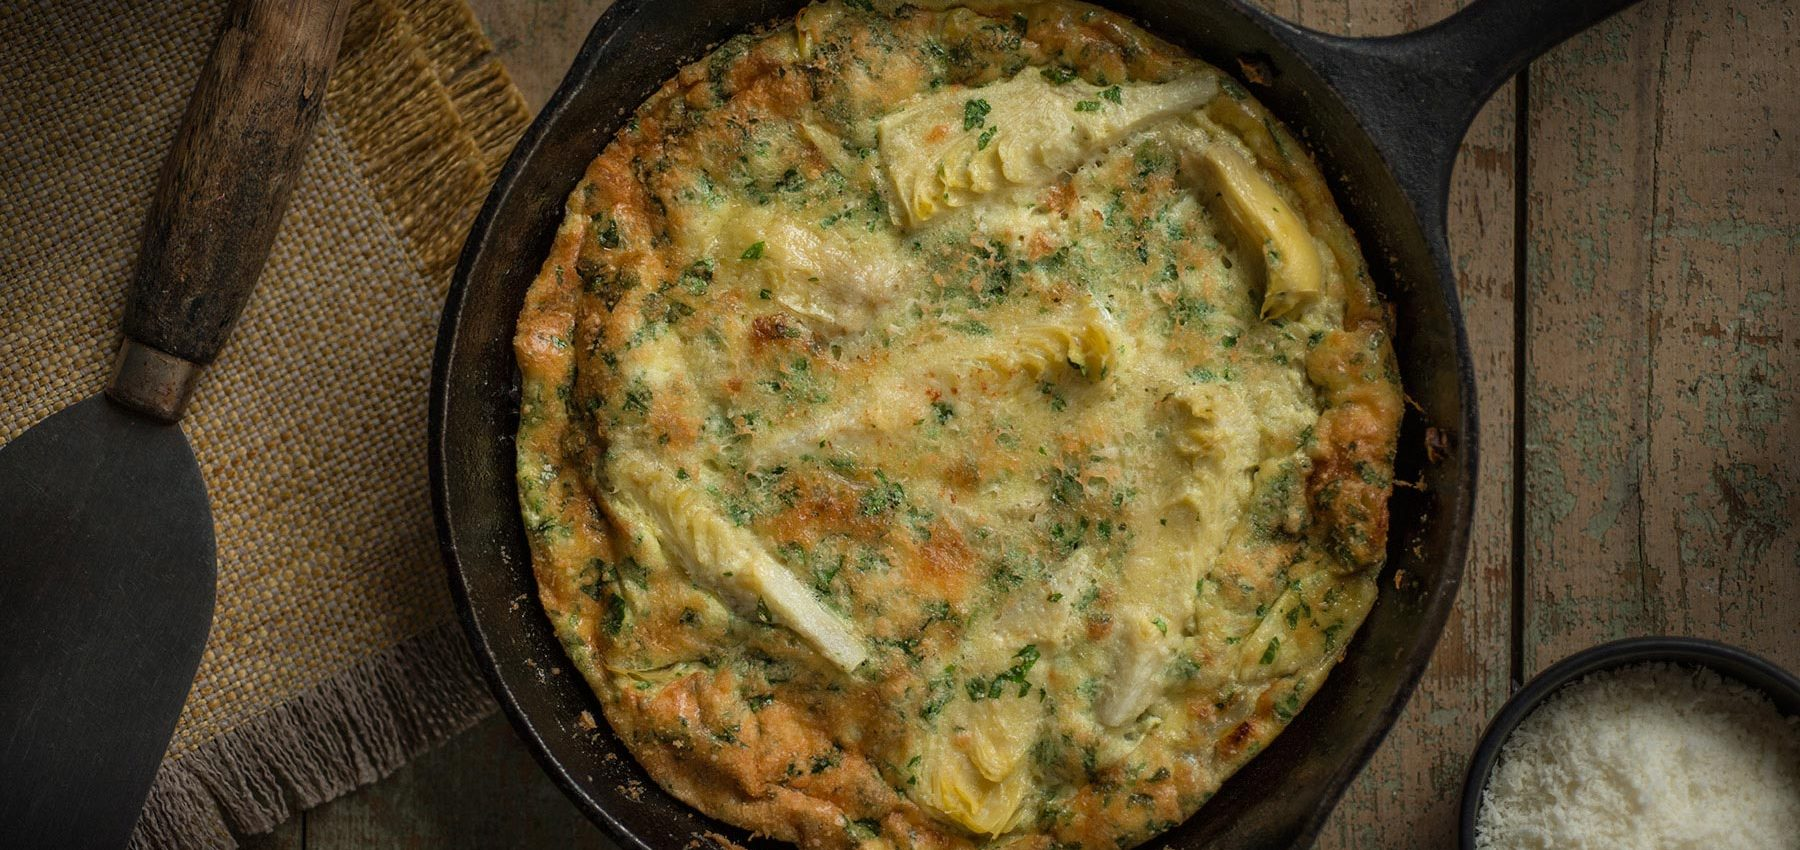 Artichoke and Pecorino Romano Frittata